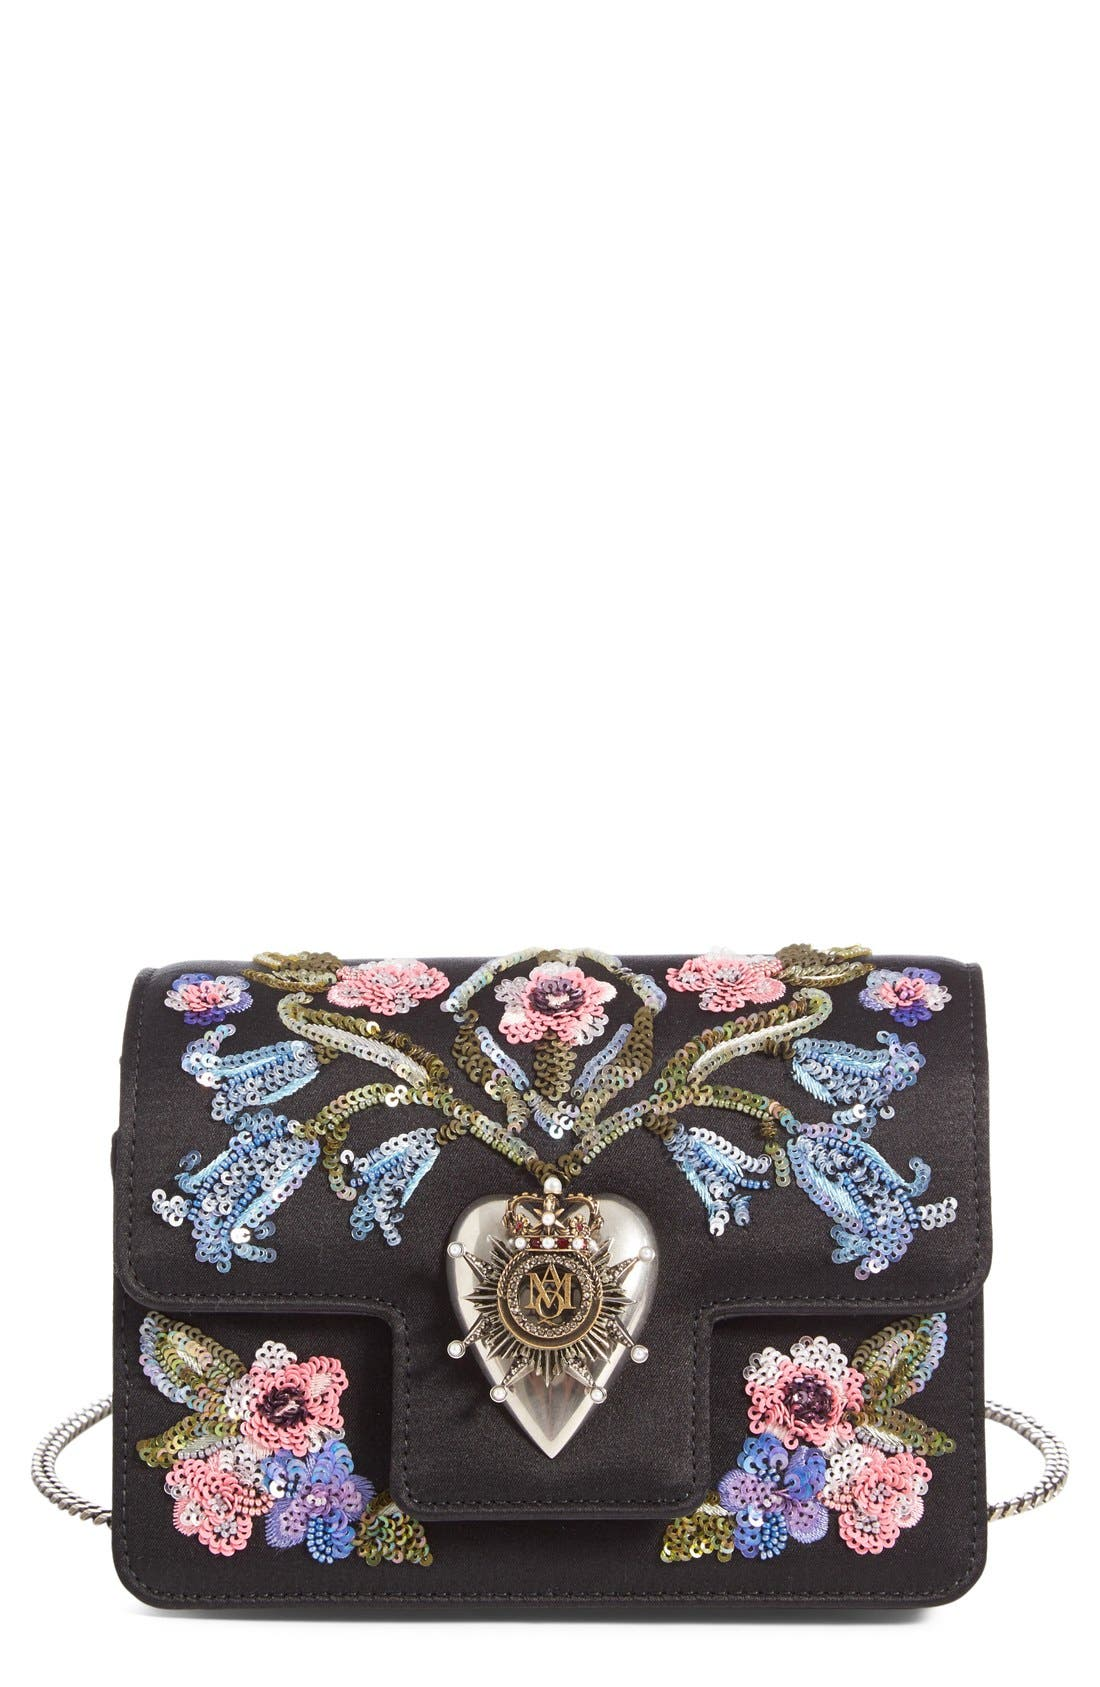 ALEXANDER MCQUEEN Mini Heart Embellished Calfskin Crossbody Bag